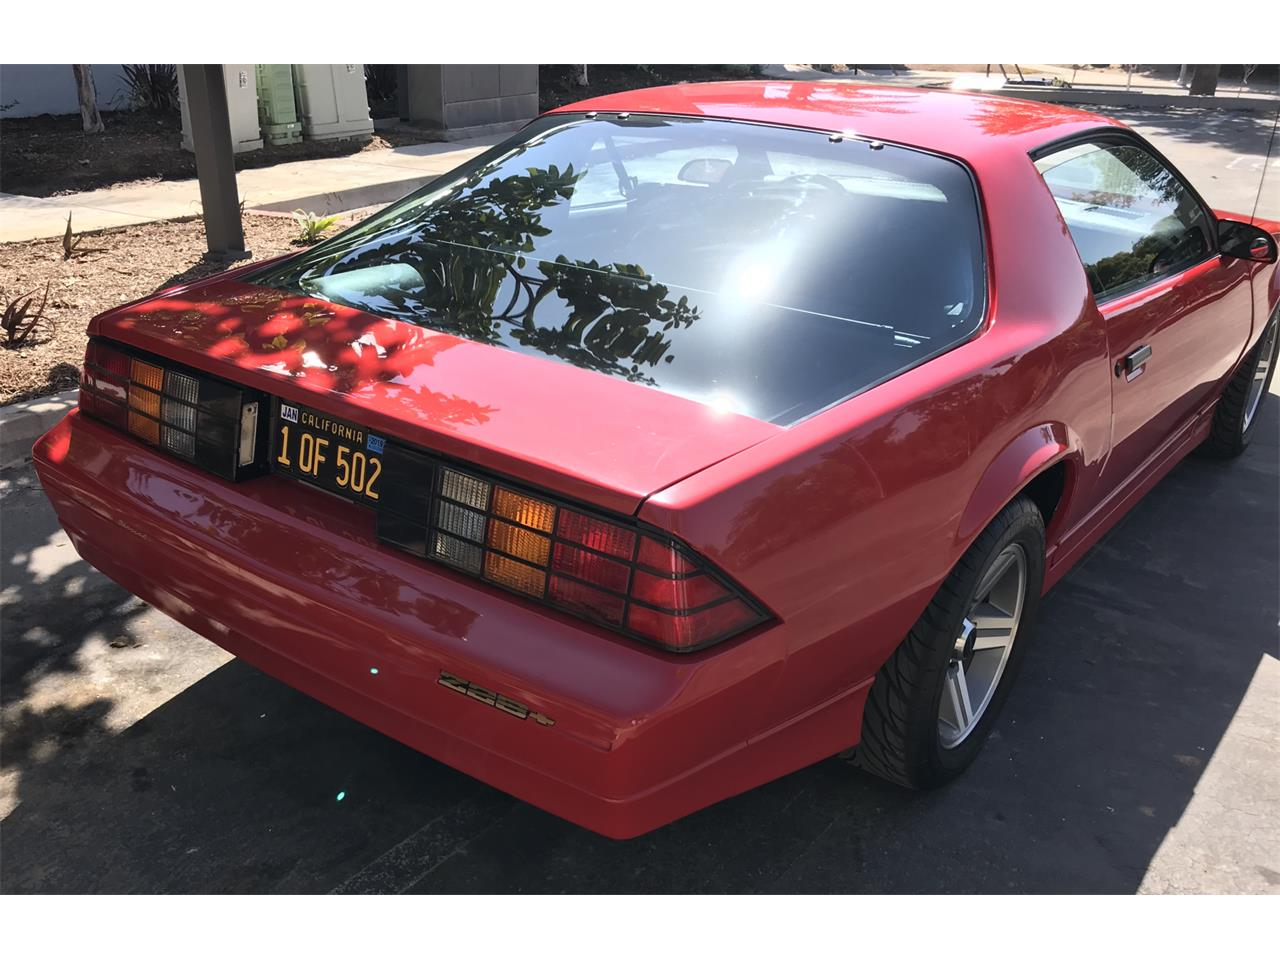 Large Picture of '85 Chevrolet Camaro IROC Z28 located in Vista California Auction Vehicle Offered by Bring A Trailer - QE91